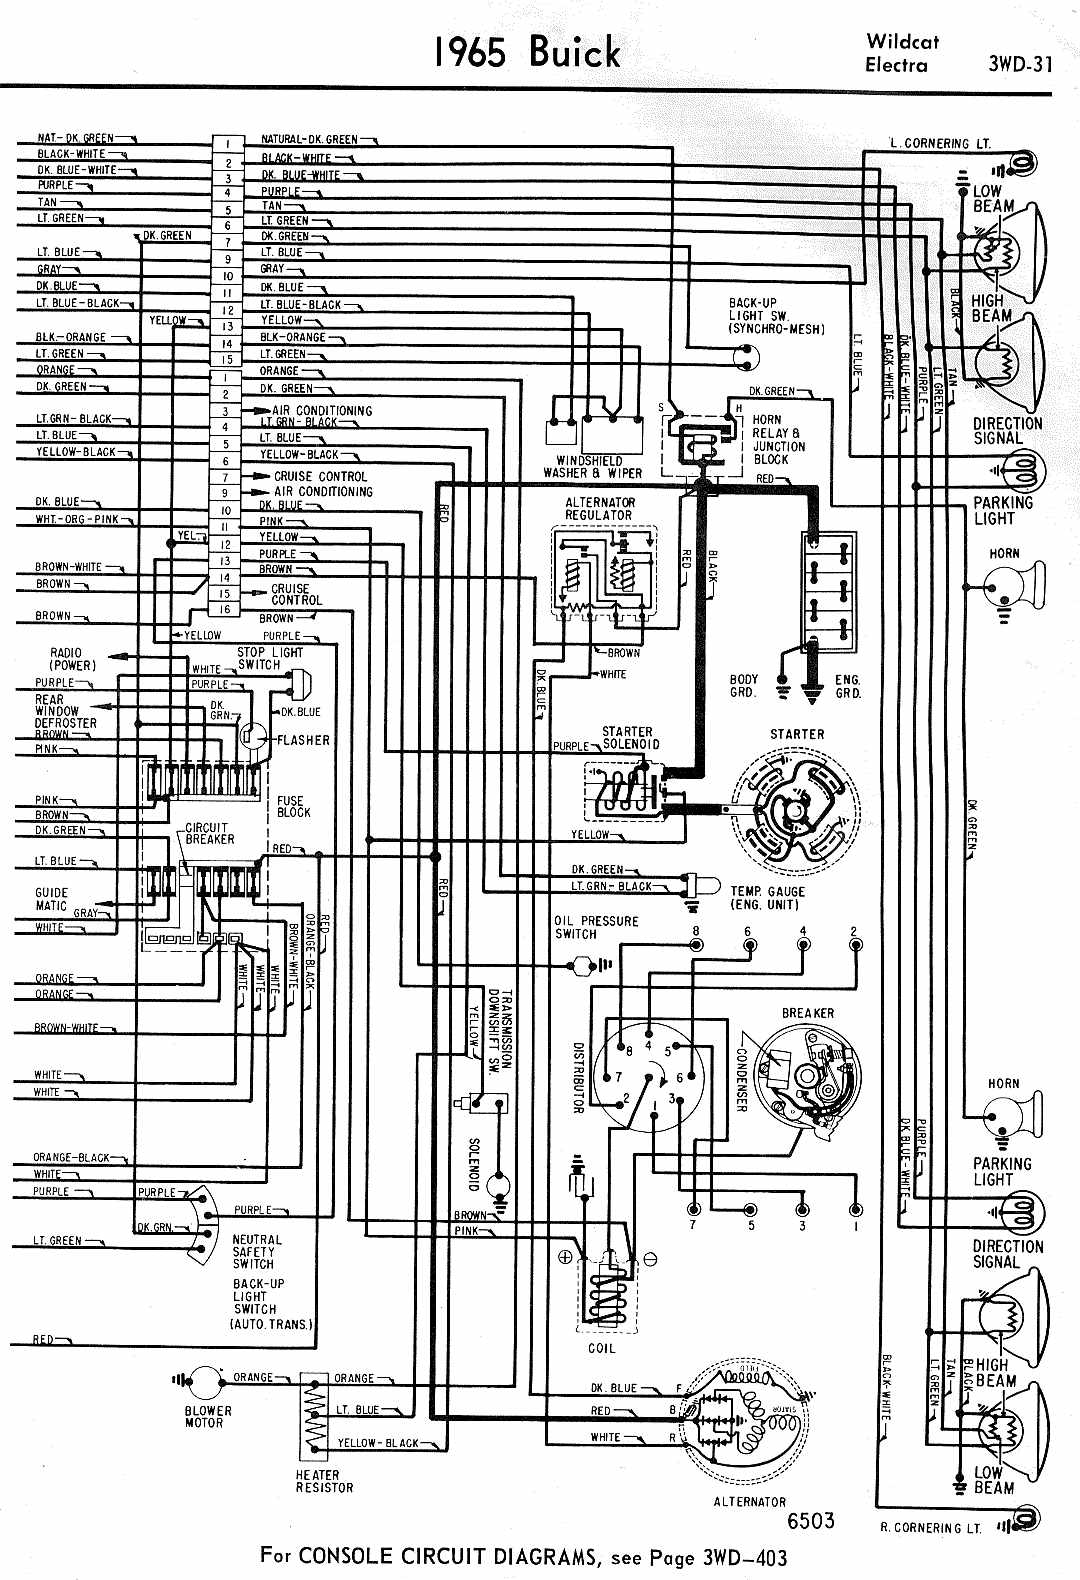 1972 Buick Skylark Wiring Diagram Simple Guide About 72 Caprice Best Site Harness